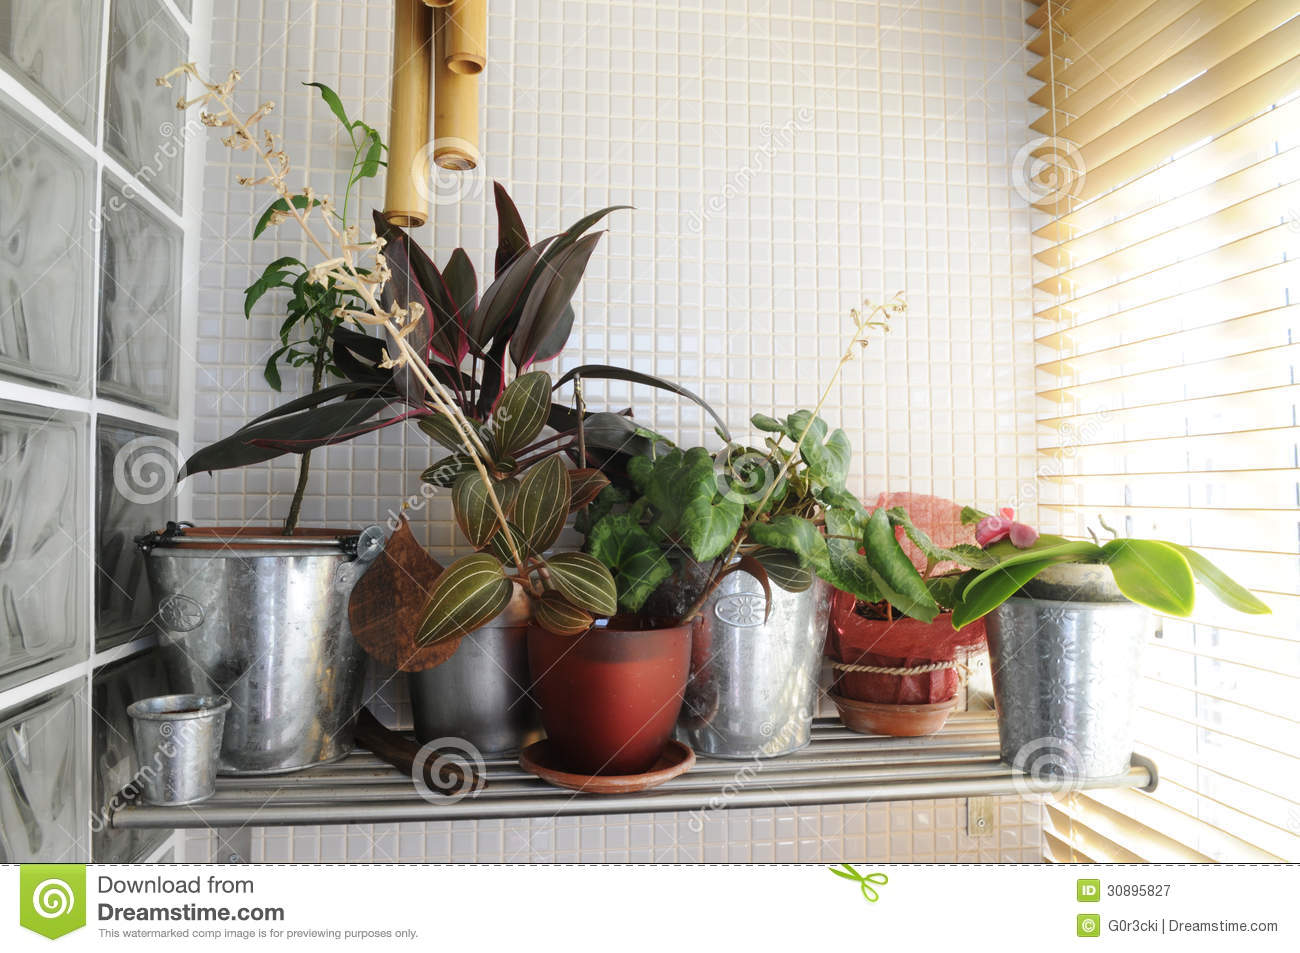 Home Plants By The Window Sunny Interior Stock Image Image Of Bamboo Ornamentals 30895827